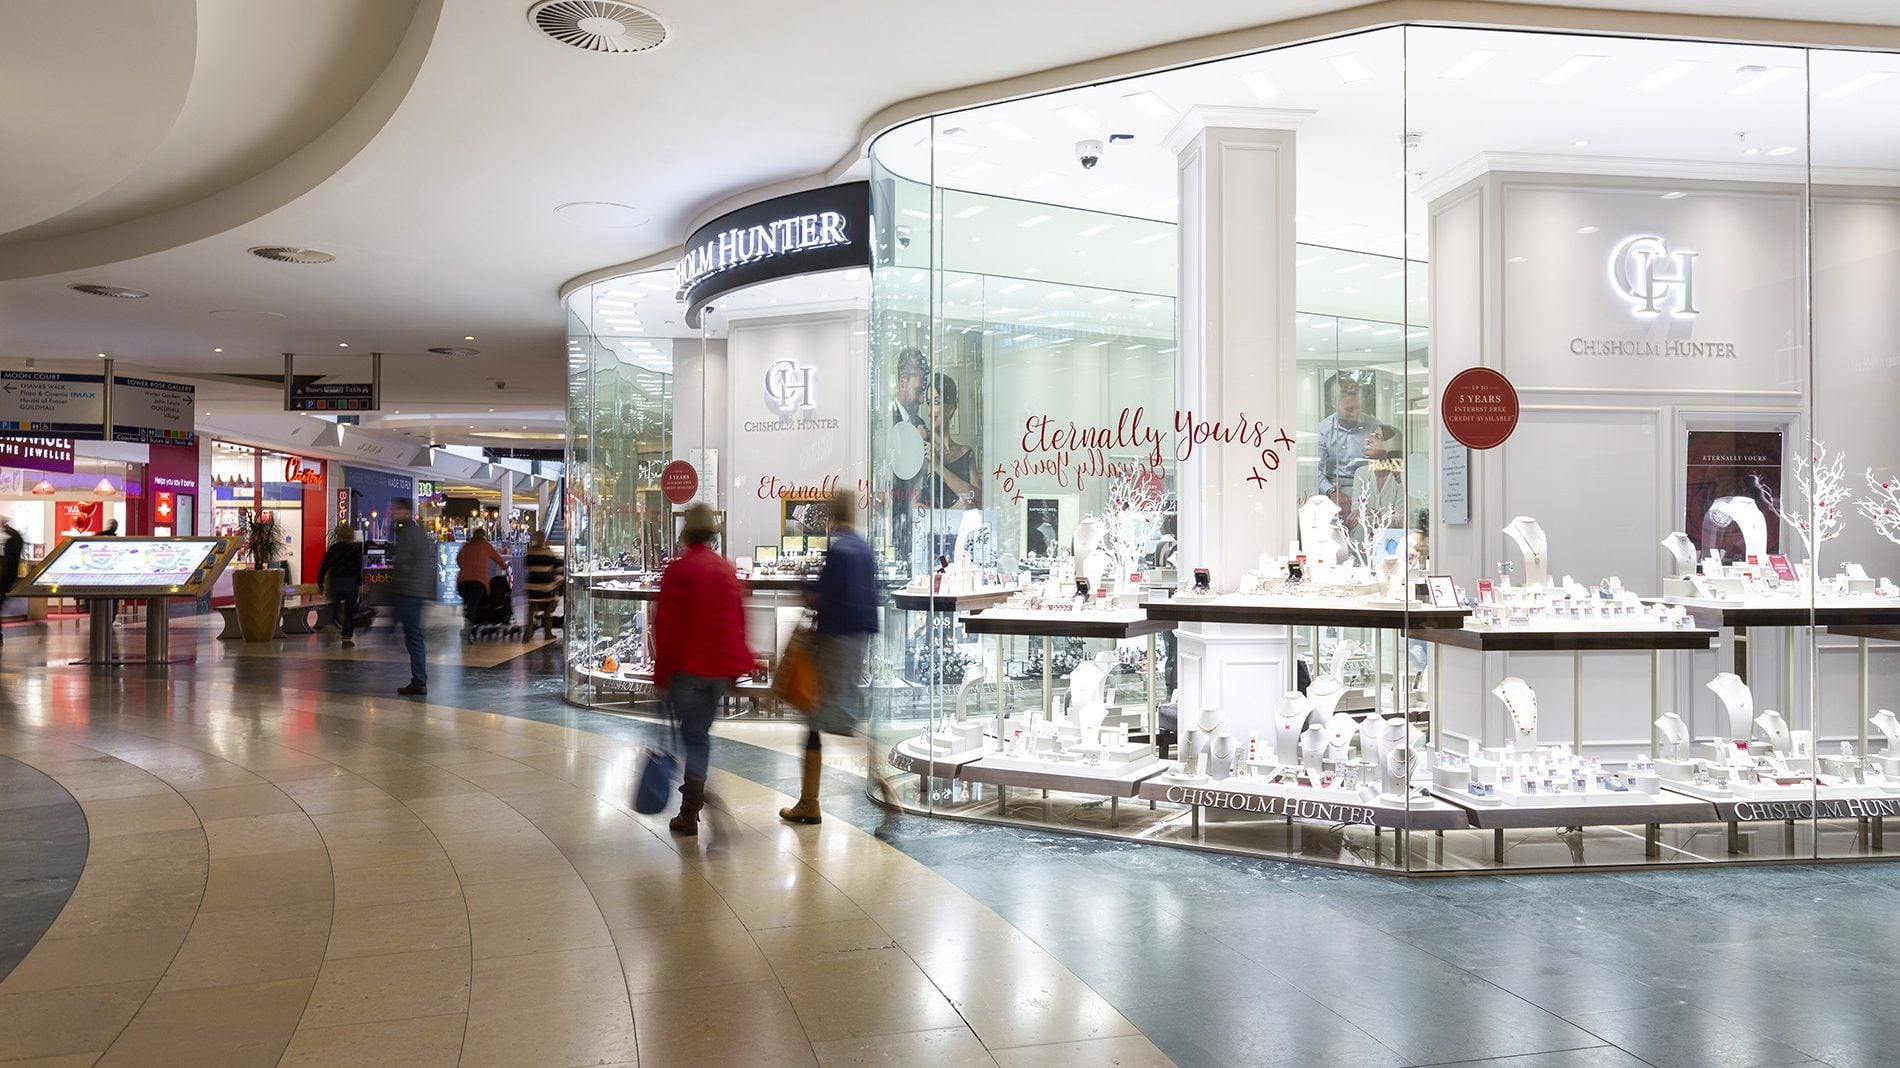 chisholm hunter jewellery store front at bluewater